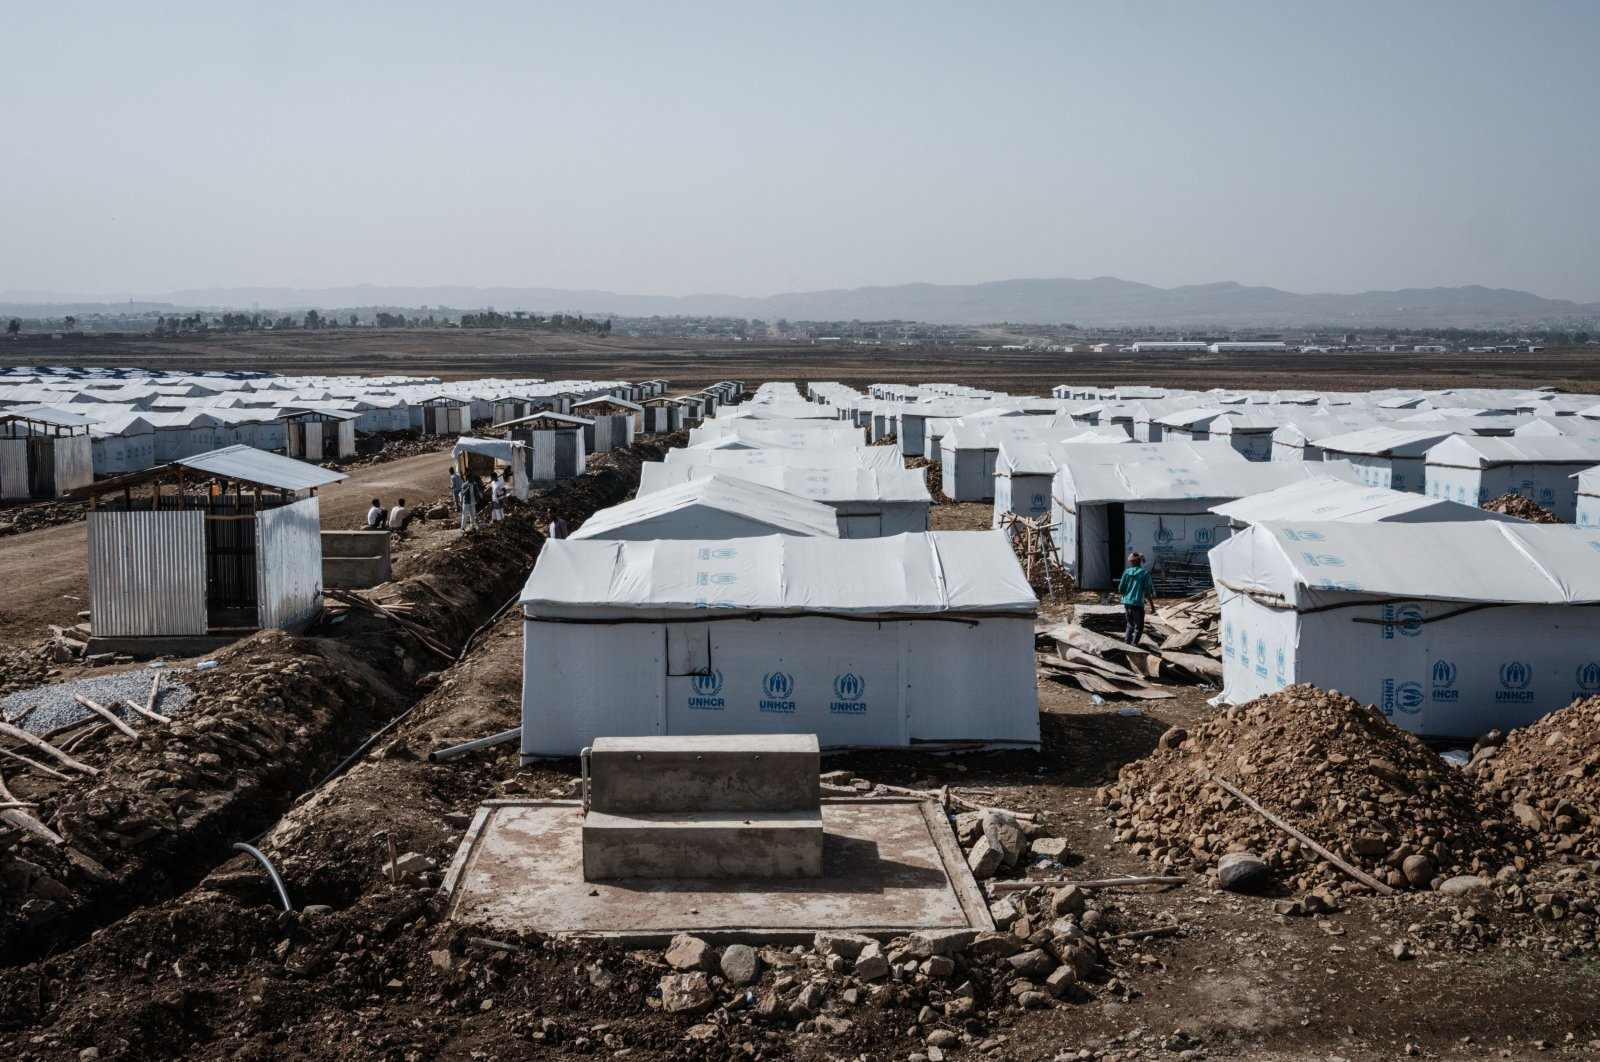 Shelters are seen at a newly built internally displaced person (IDP) camp which will host about 19,000 people near Mekelle Industrial Park in Mekele, the capital of Tigray region, Ethiopia, on June 28, 2021. (AFP Photo)